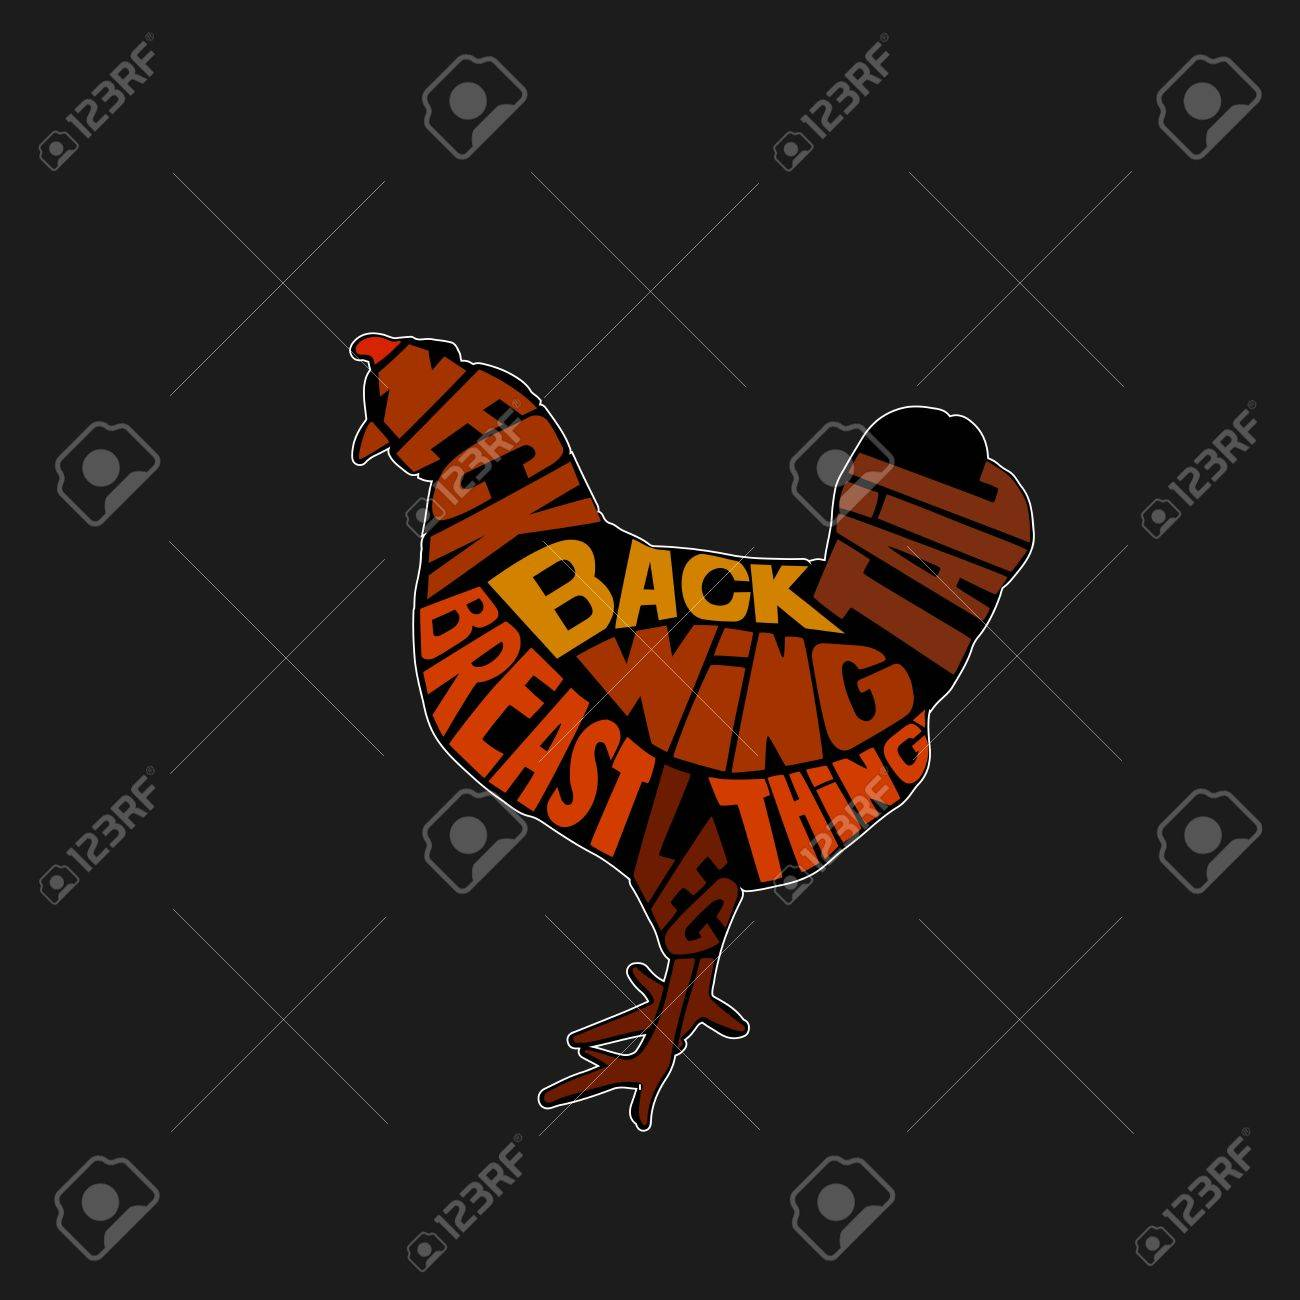 Typographic Chicken Butcher Cuts Diagram Hand Drawn Vintage Stock Vector Label Illustration